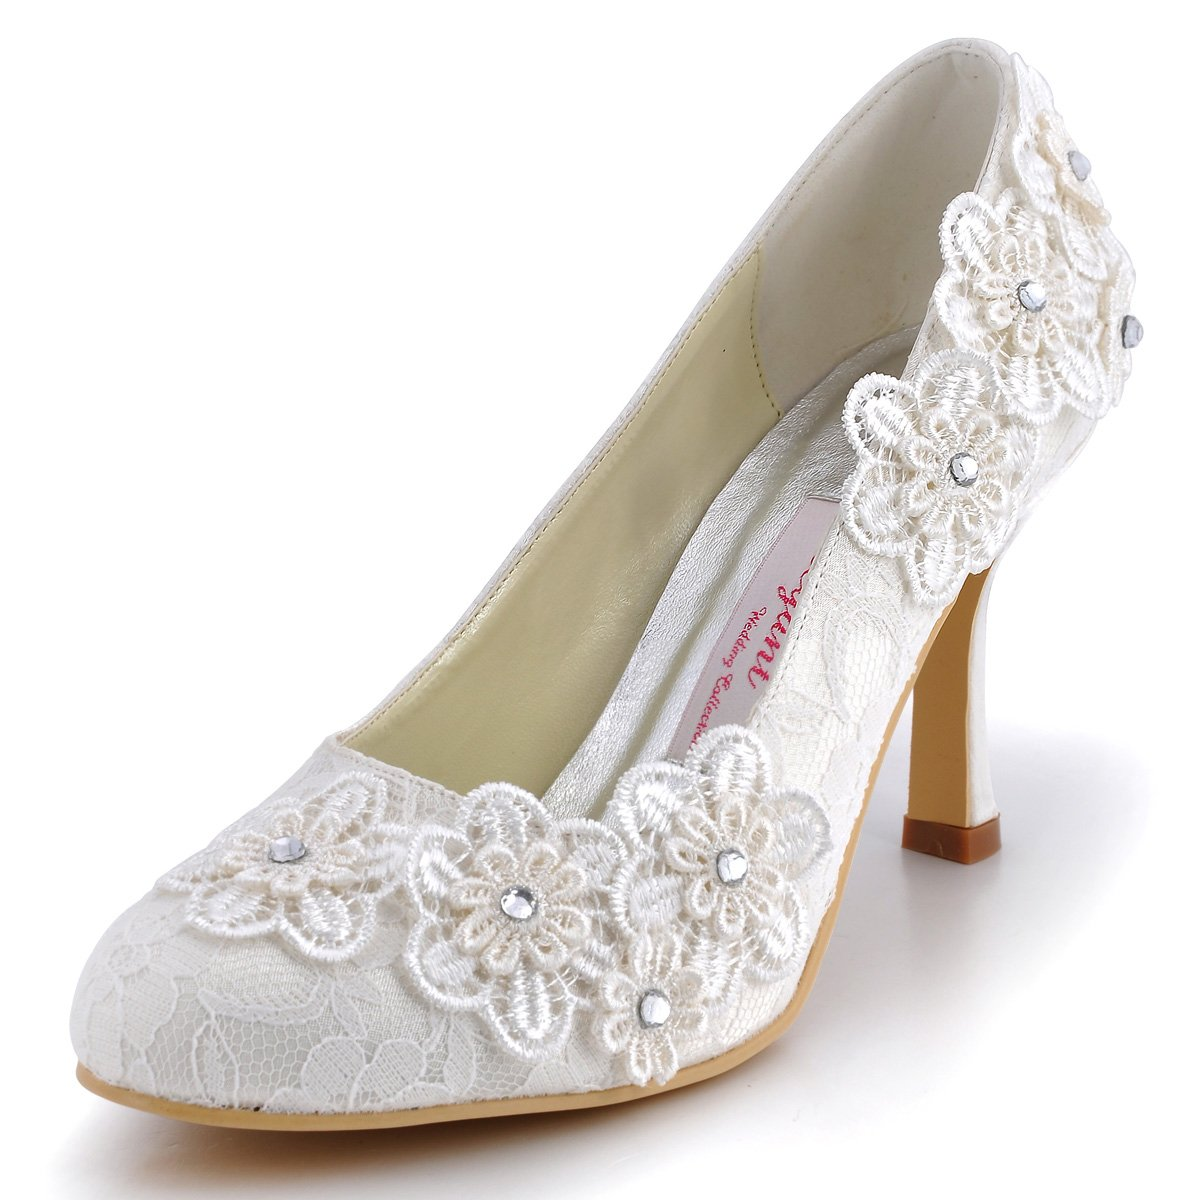 ElegantPark Women Vintage Closed Toe Pumps High Heel Flowers Lace Wedding Bridal Dress Shoes 0